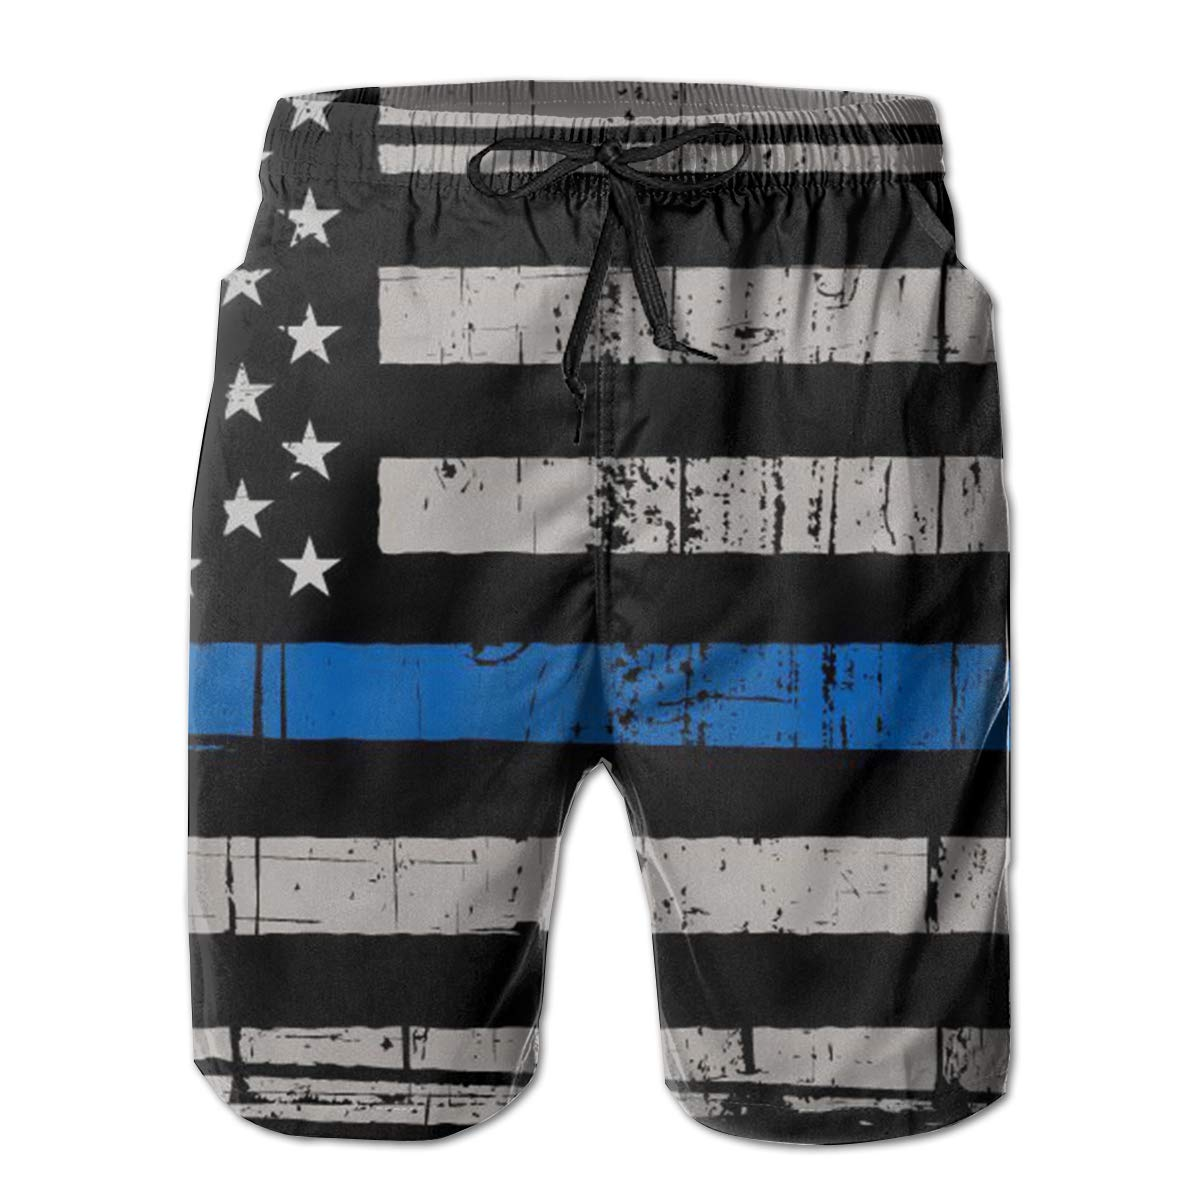 Mens Running Boardshorts Dry Plus Size Beach Shorts No Mesh Lining for Young